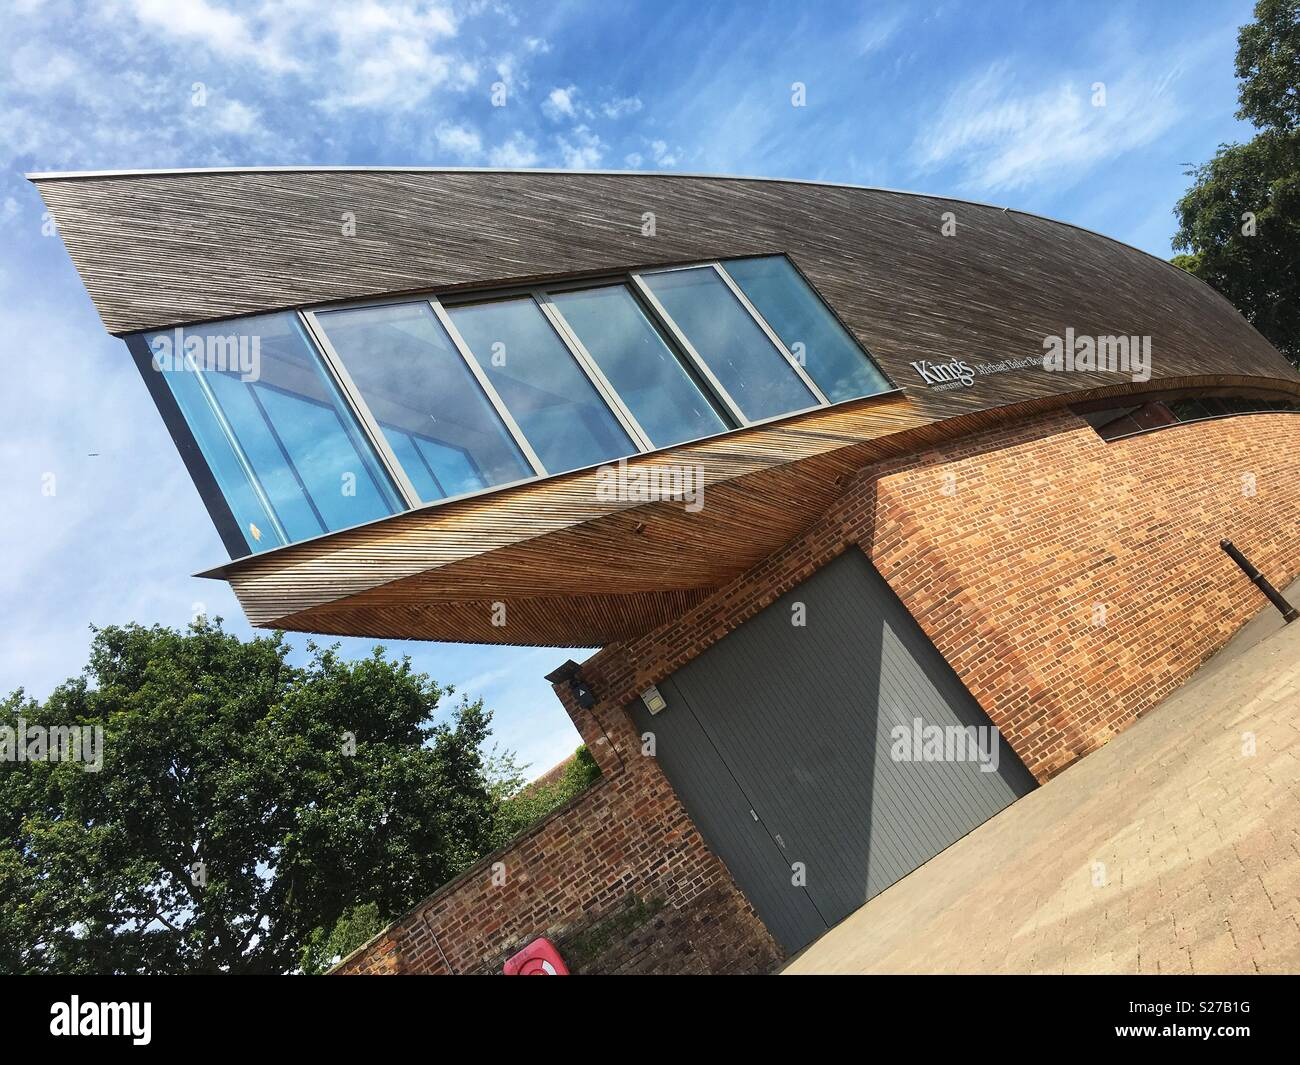 Worcester UK the new King's School boat house completed in 2012 - Stock Image